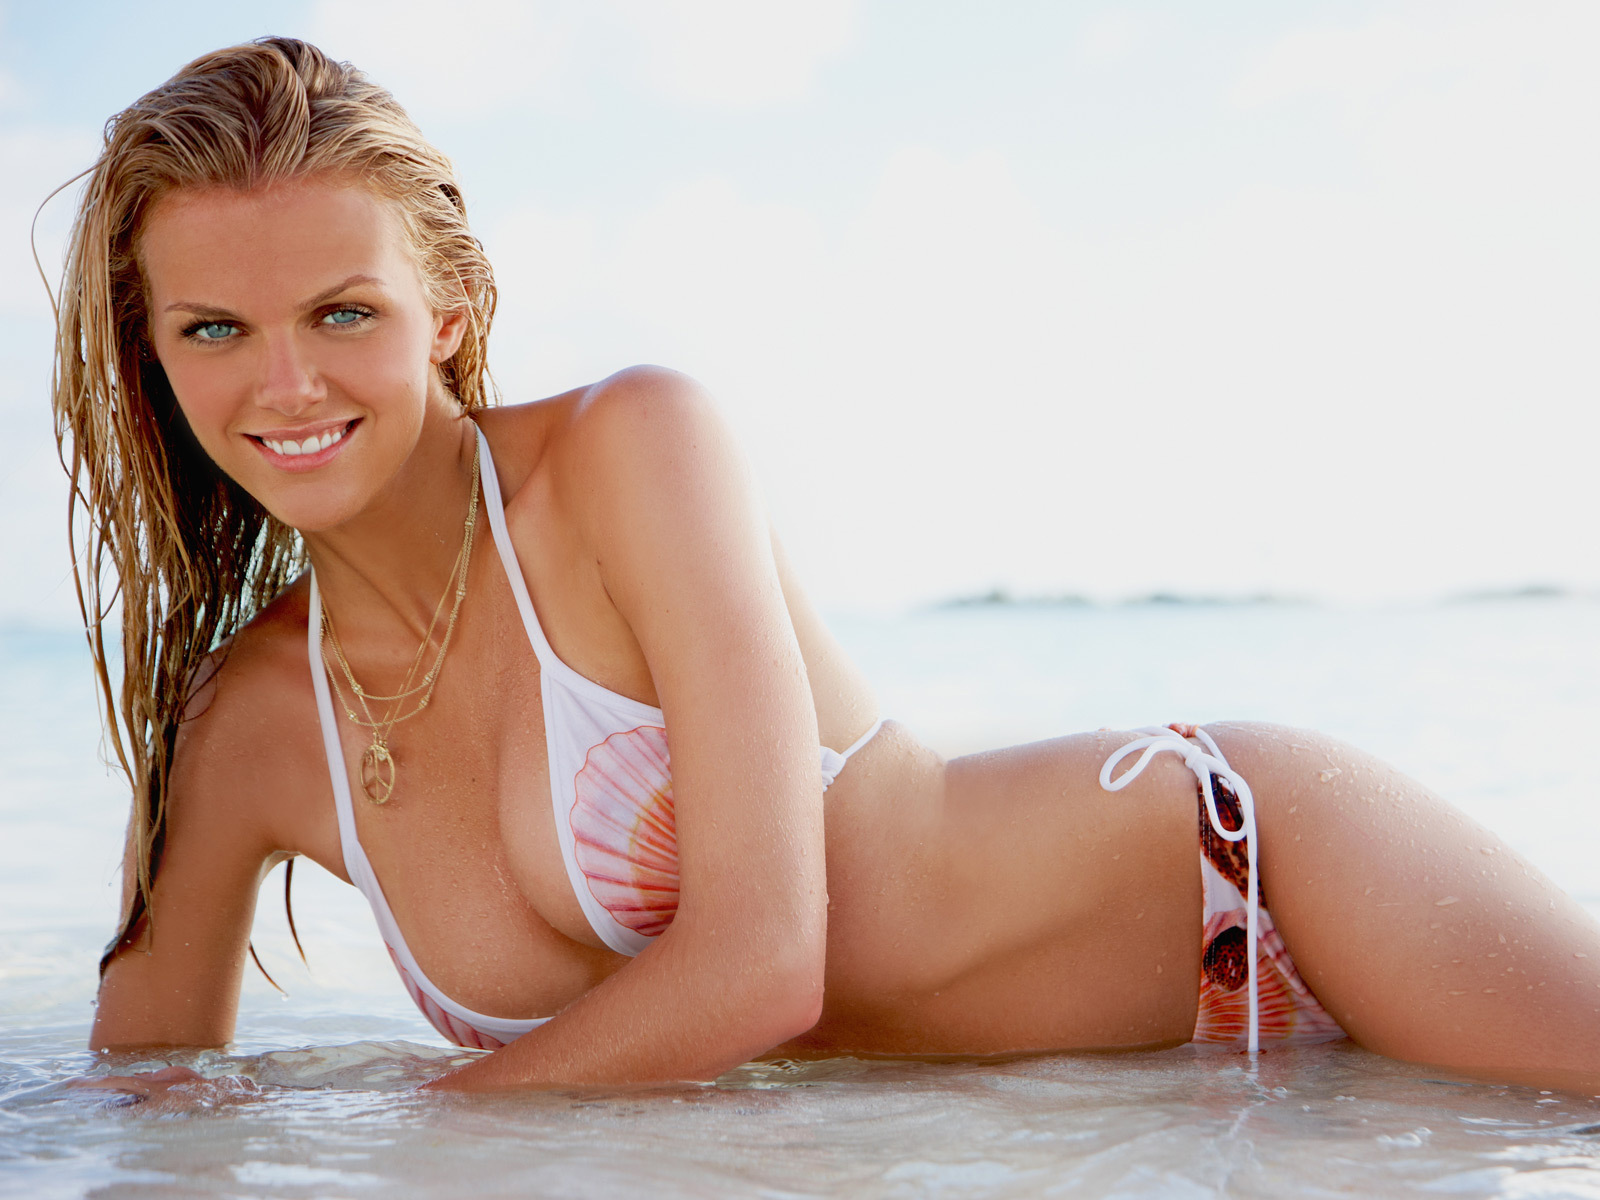 Brooklyn - Brooklyn Decker Wallpaper (22804373) - Fanpop fanclubs